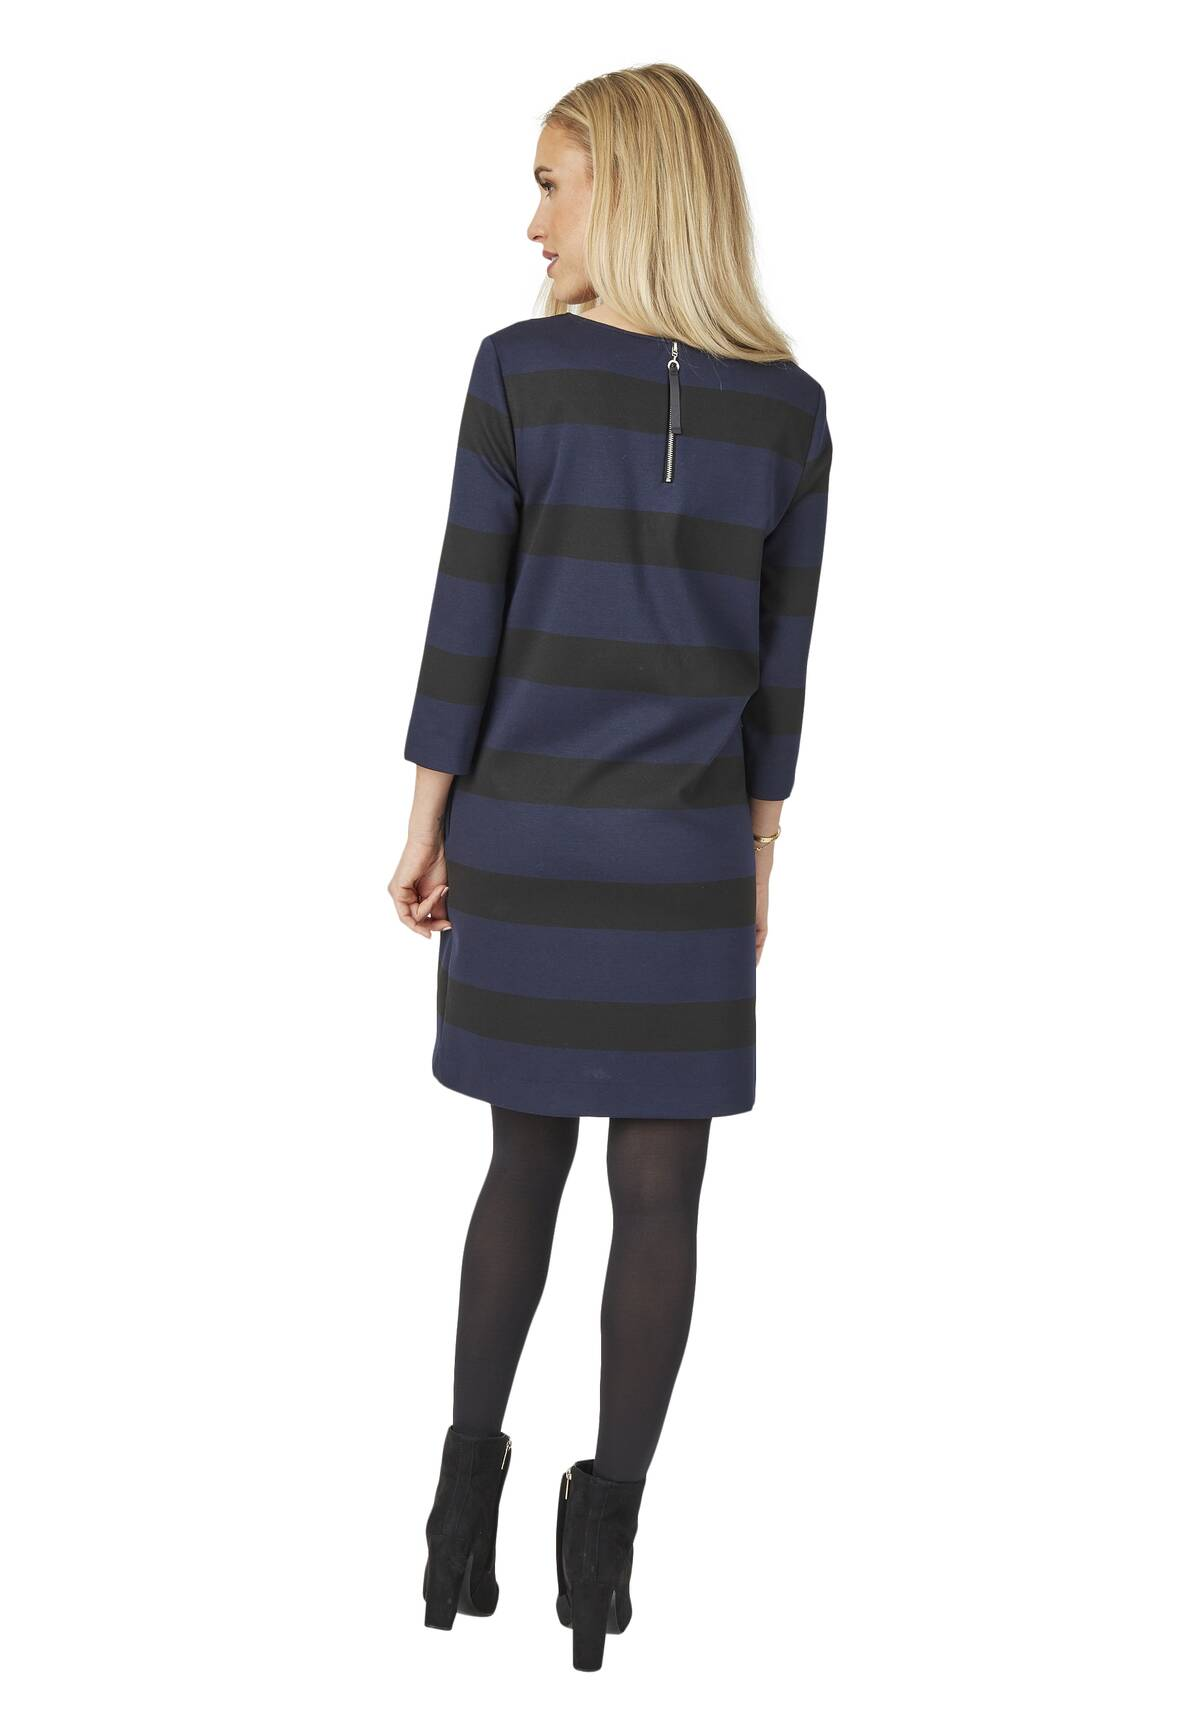 Modernes Jersey-Kleid / Dress